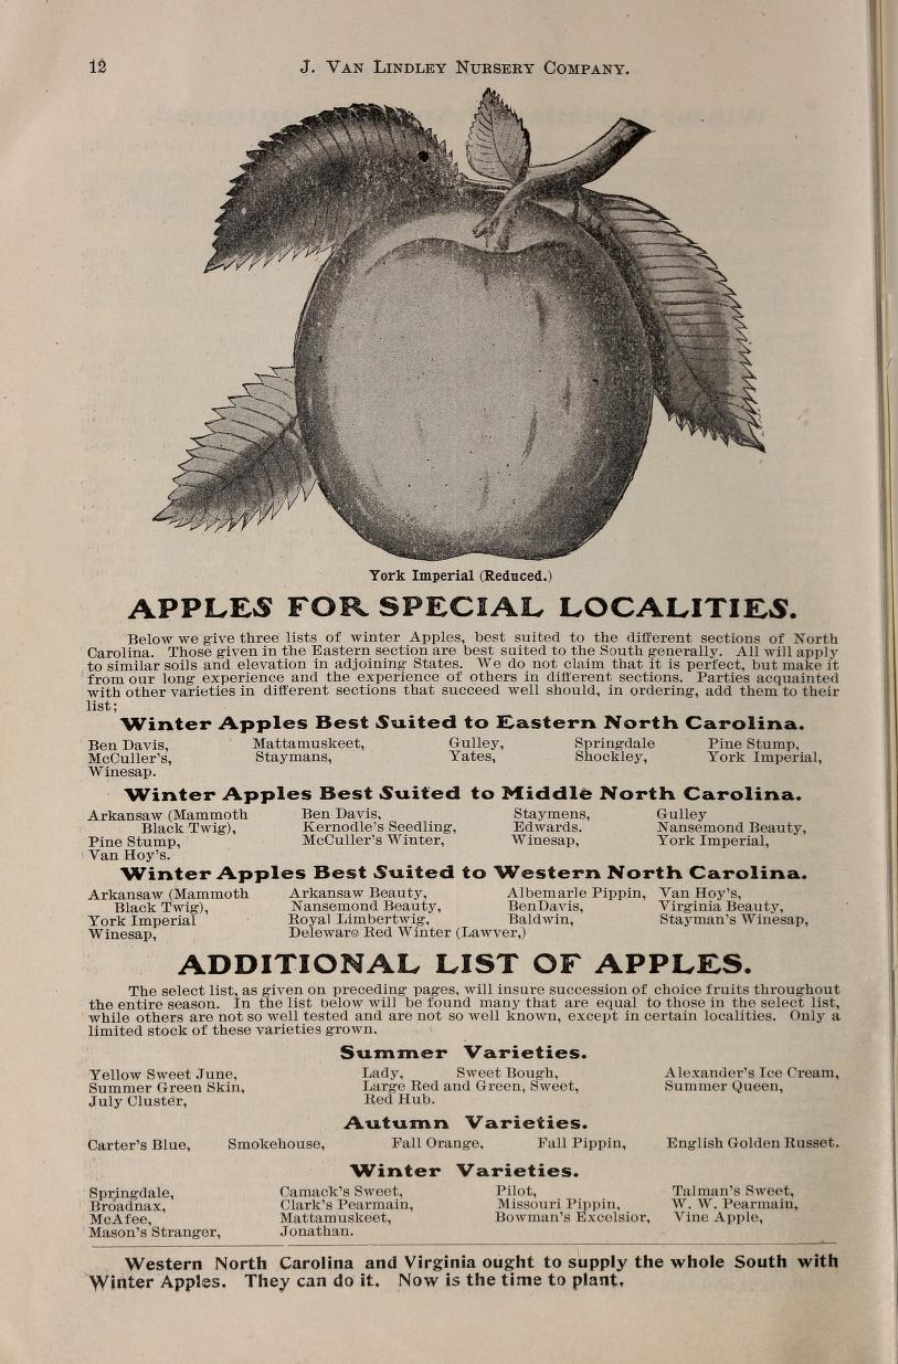 Vintage apple nursery catalog page with a line drawing of an apple